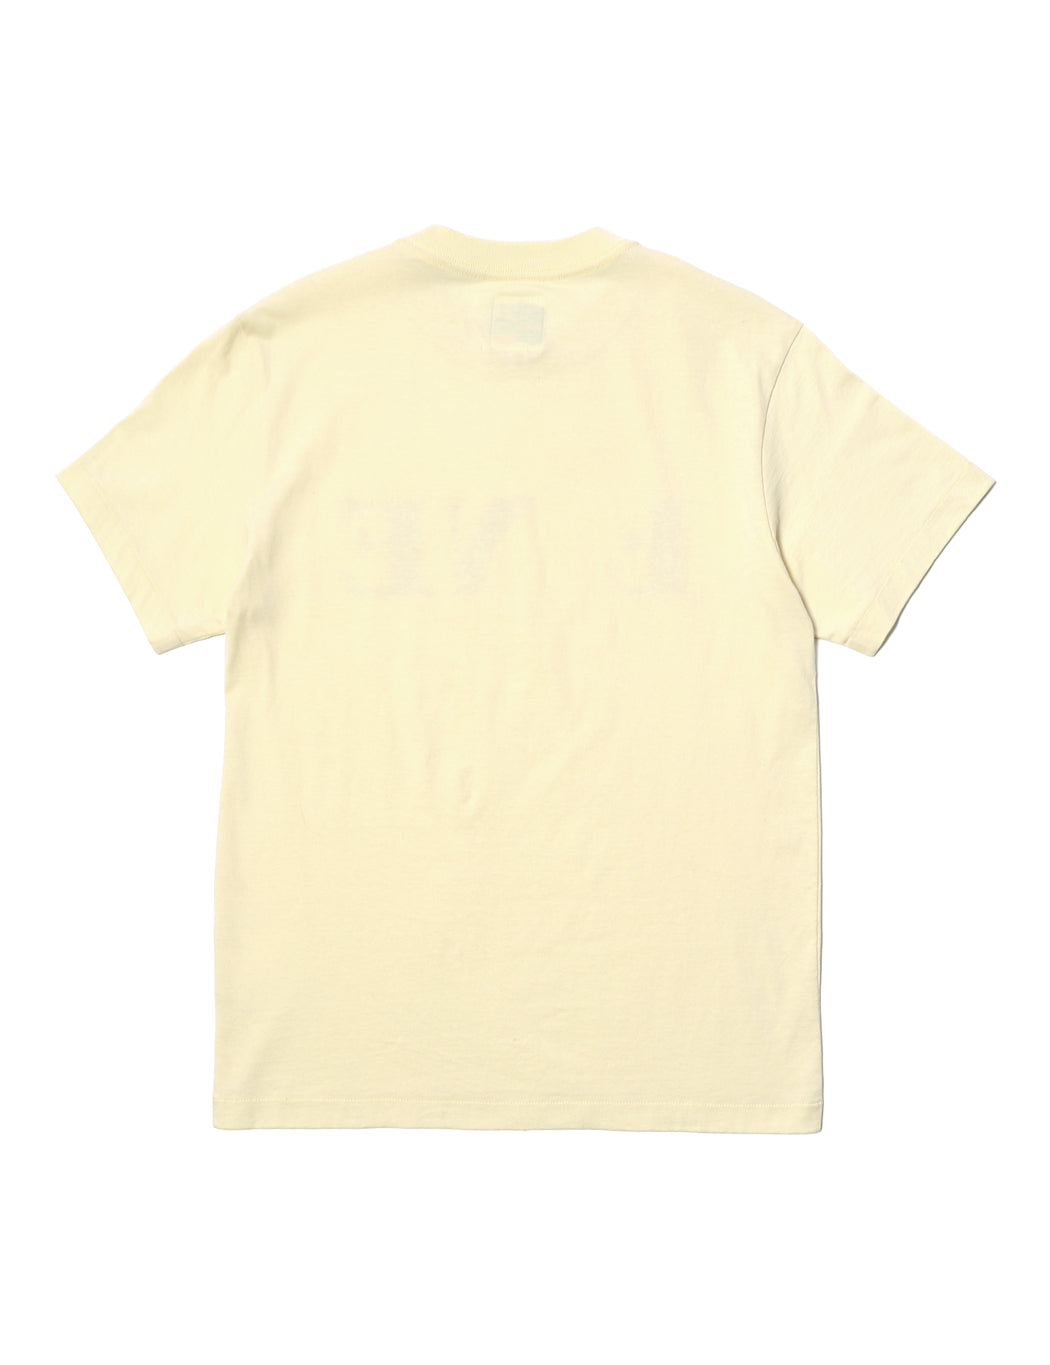 EINE Bulldog S/S T-Shirt - Off White - Eine London by Ben Eine